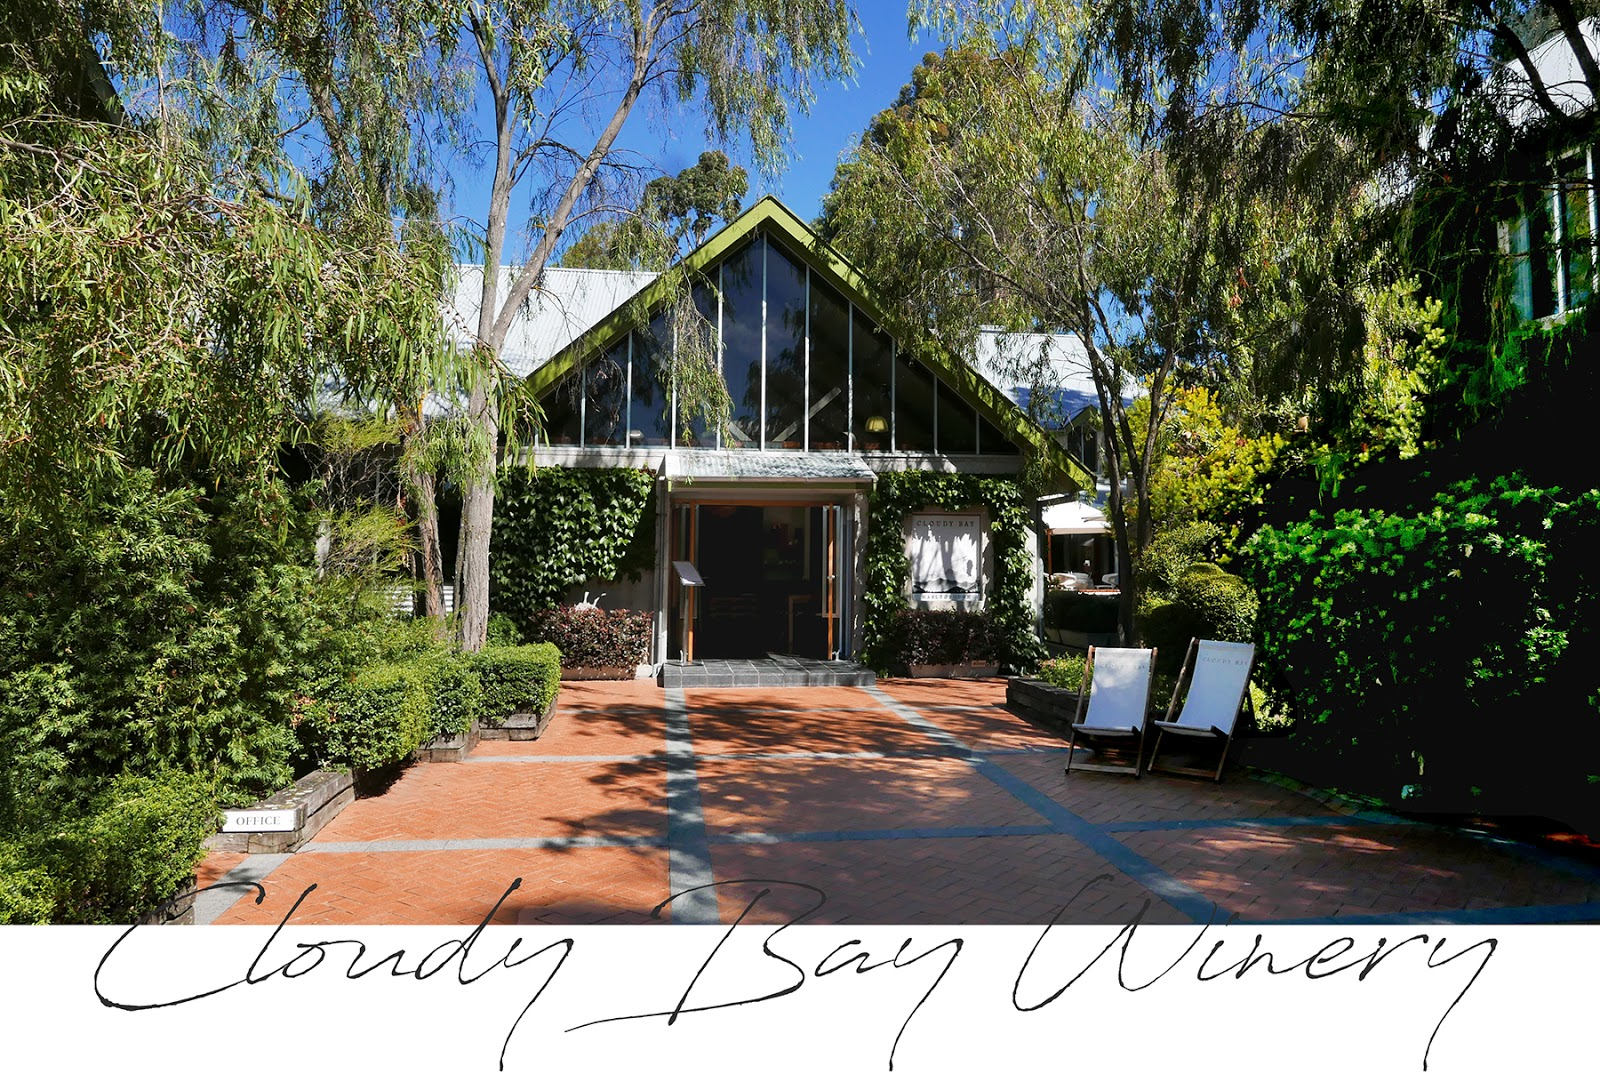 Euriental | luxury travel & style | Cloudy Bay Winery, Marlborough, New Zealand